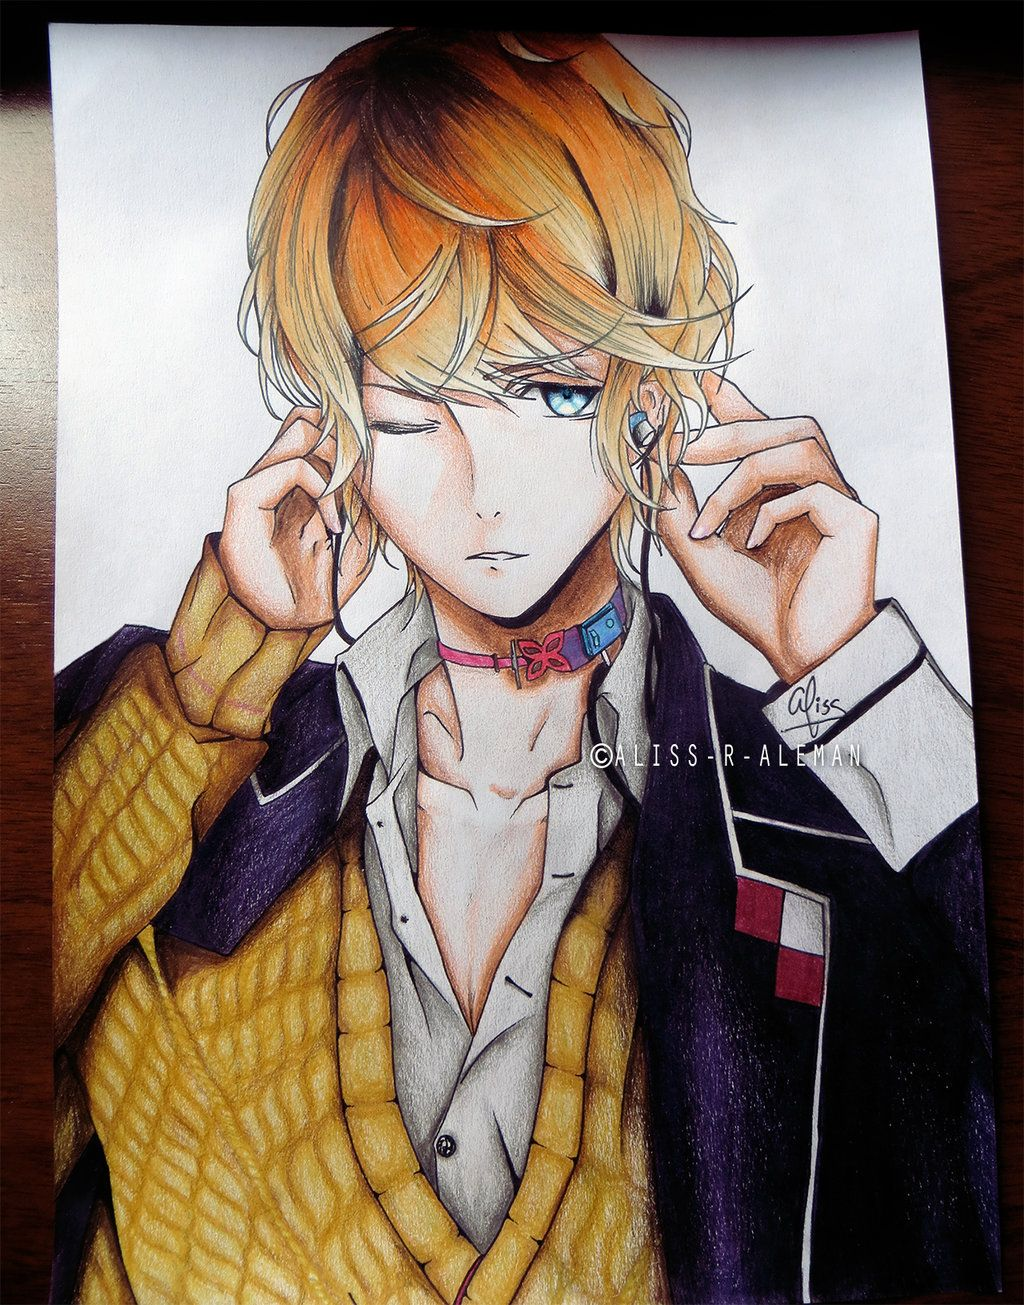 This guy is Kanato from Diabolik Lovers, an otome game by